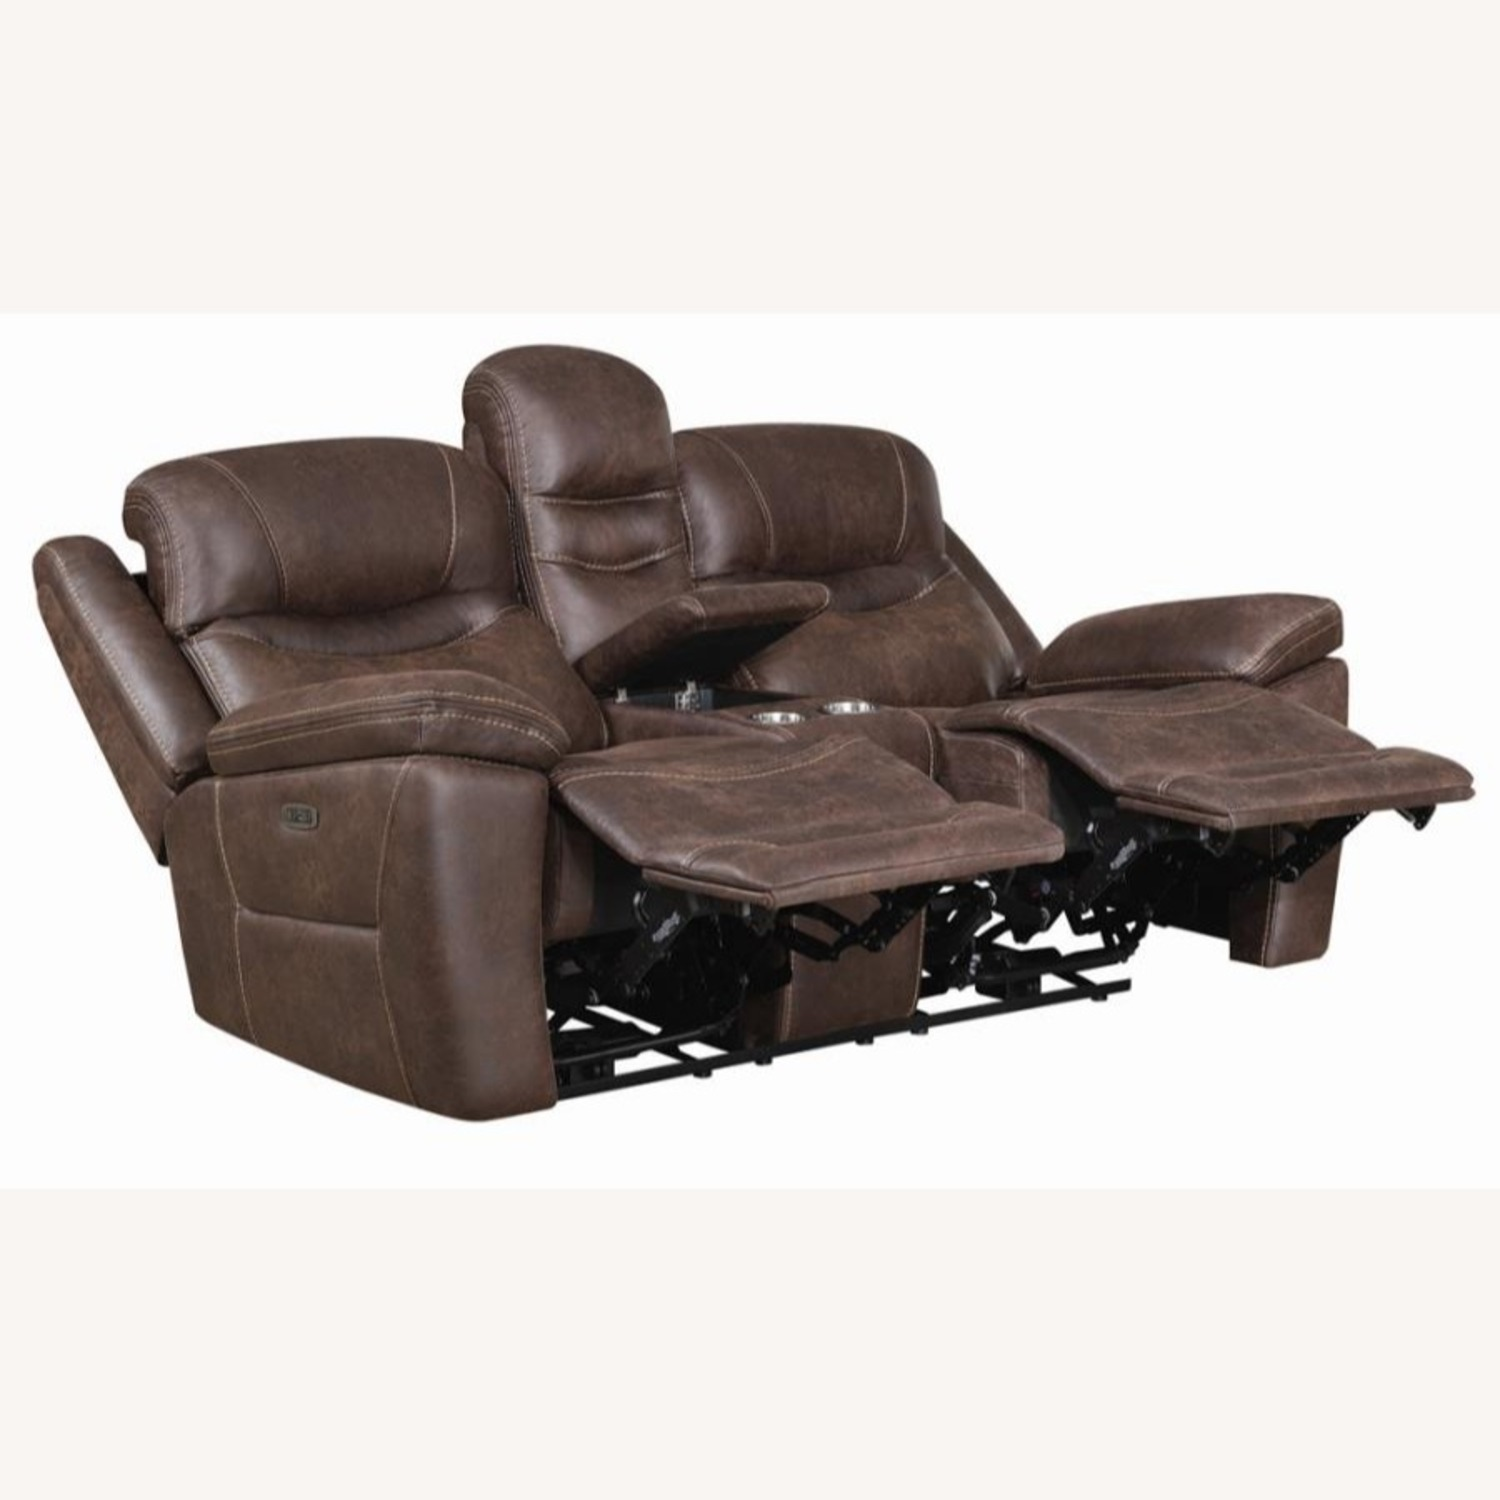 Power Loveseat Recliner In Chocolate Upholstery - image-1